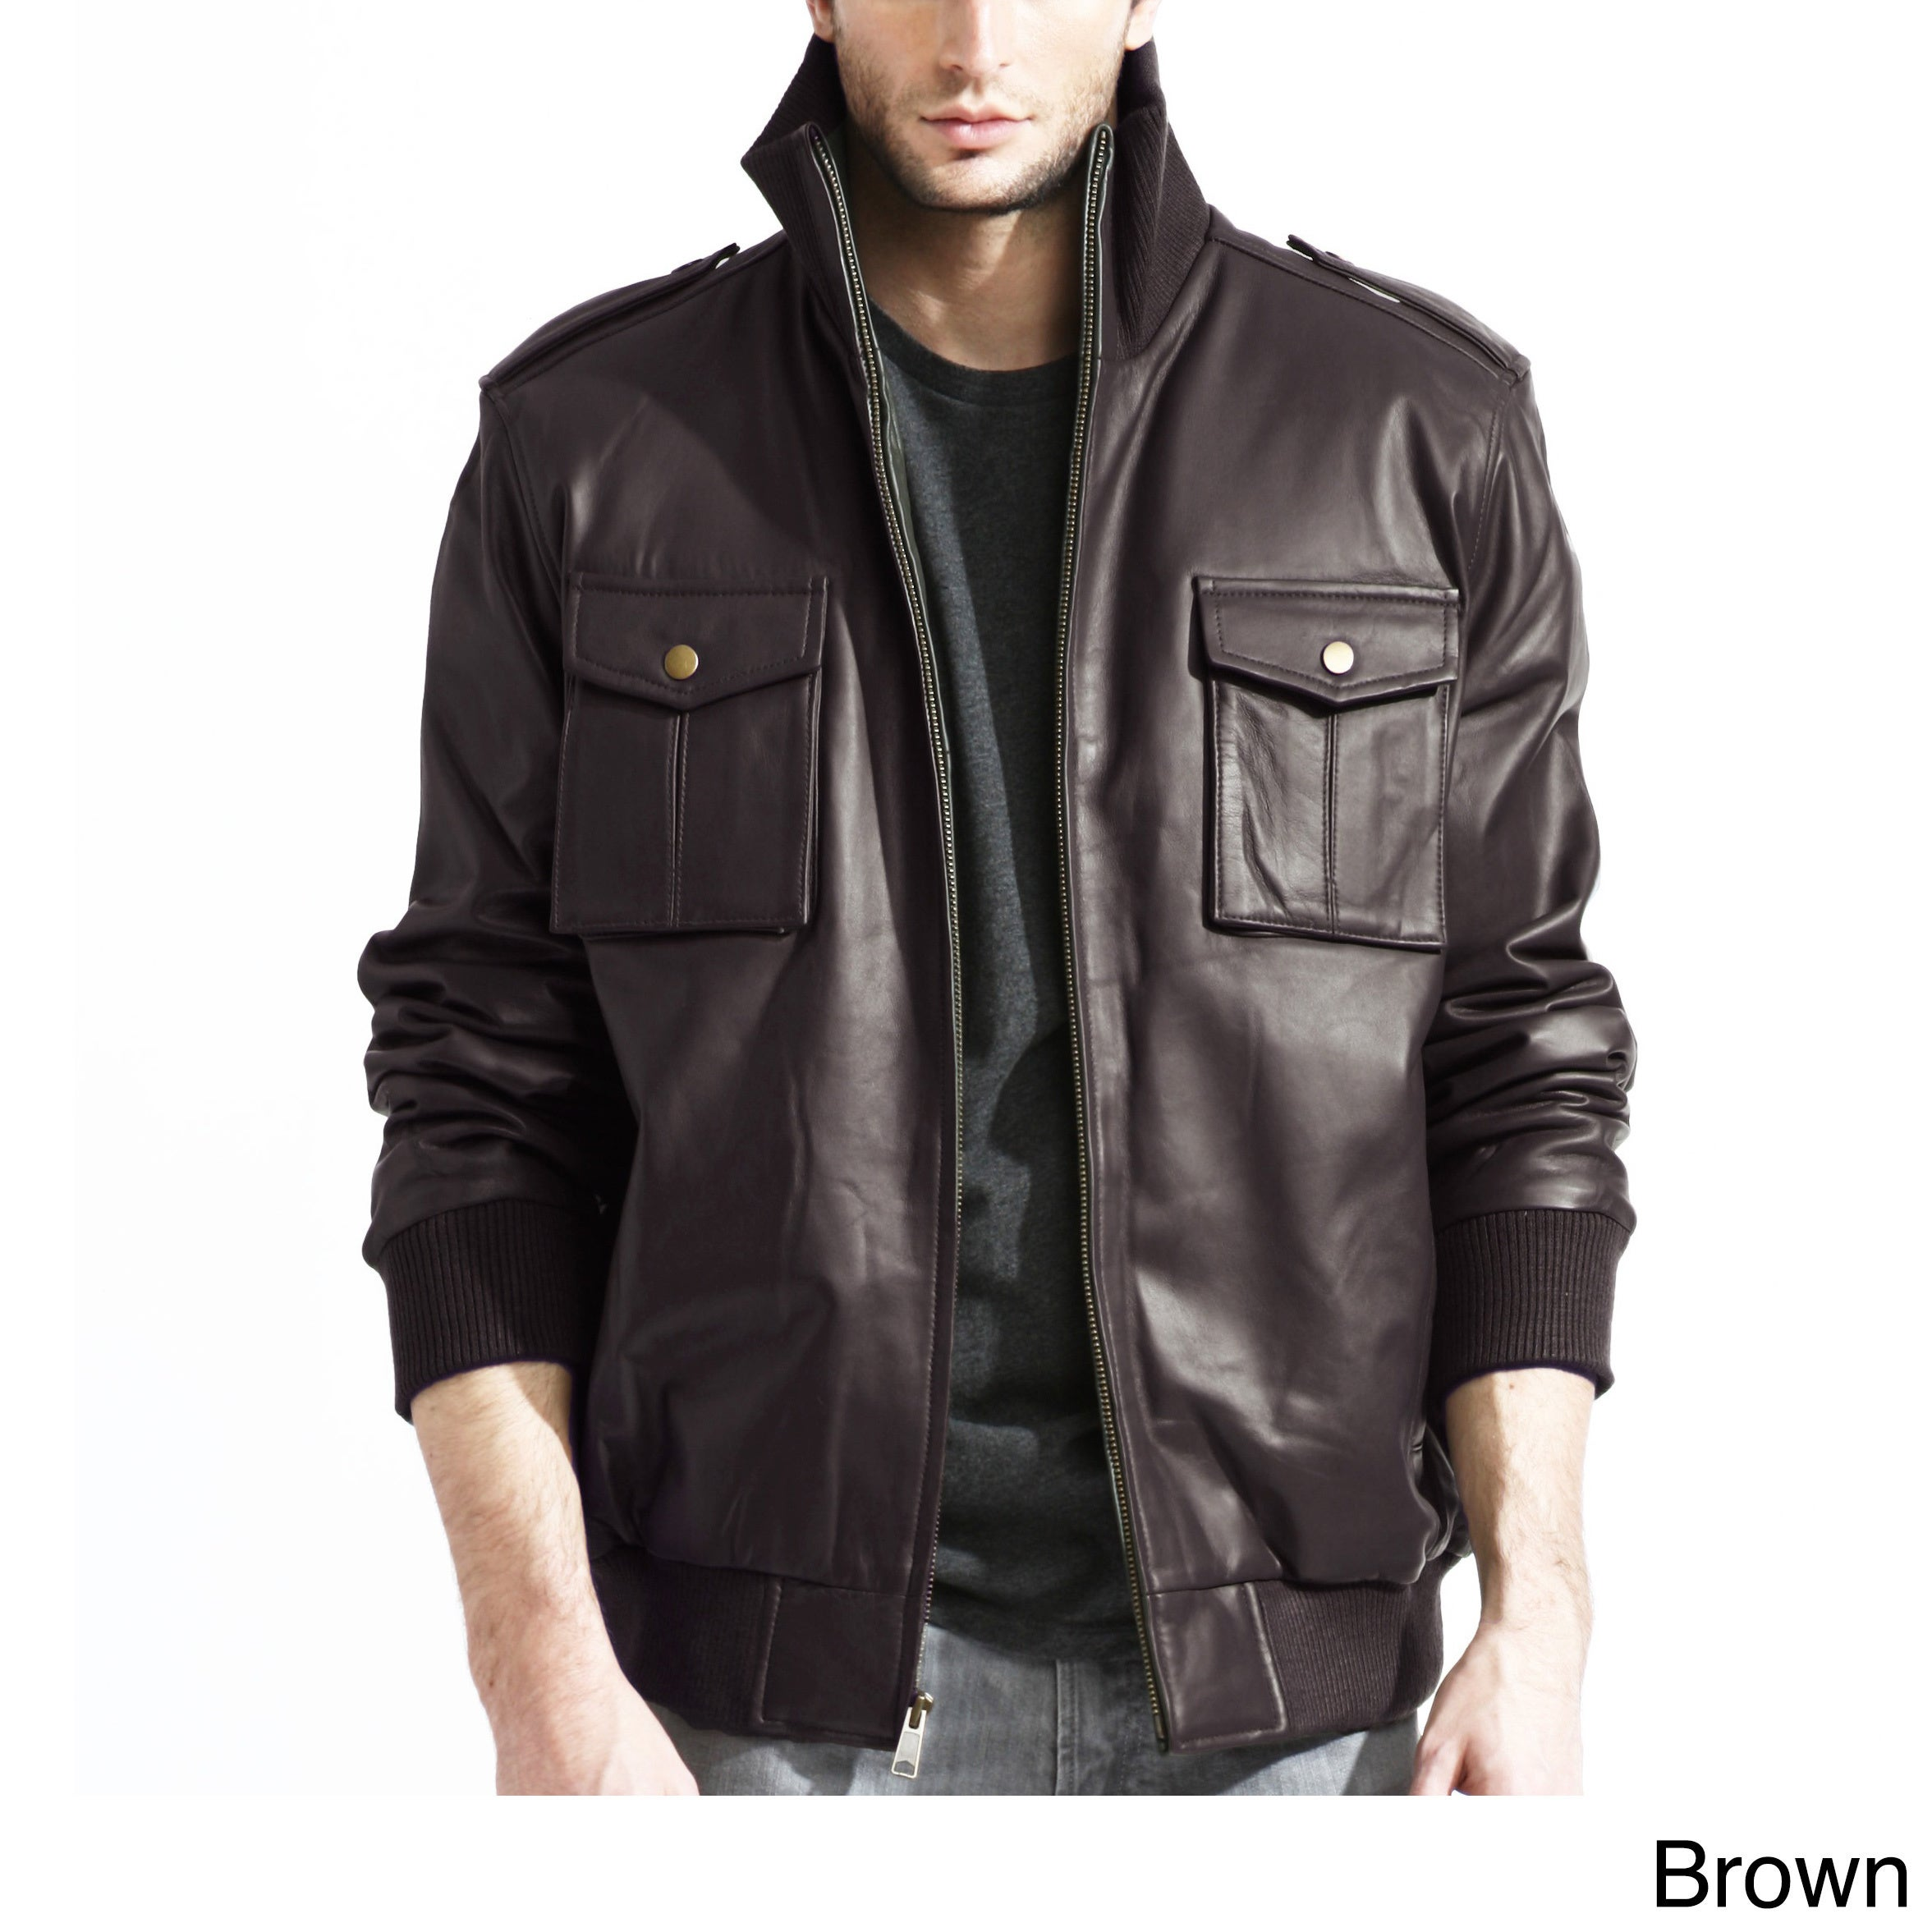 TANNERS AVENUE Men's Pig Napa Leather Military Bomber Jac...